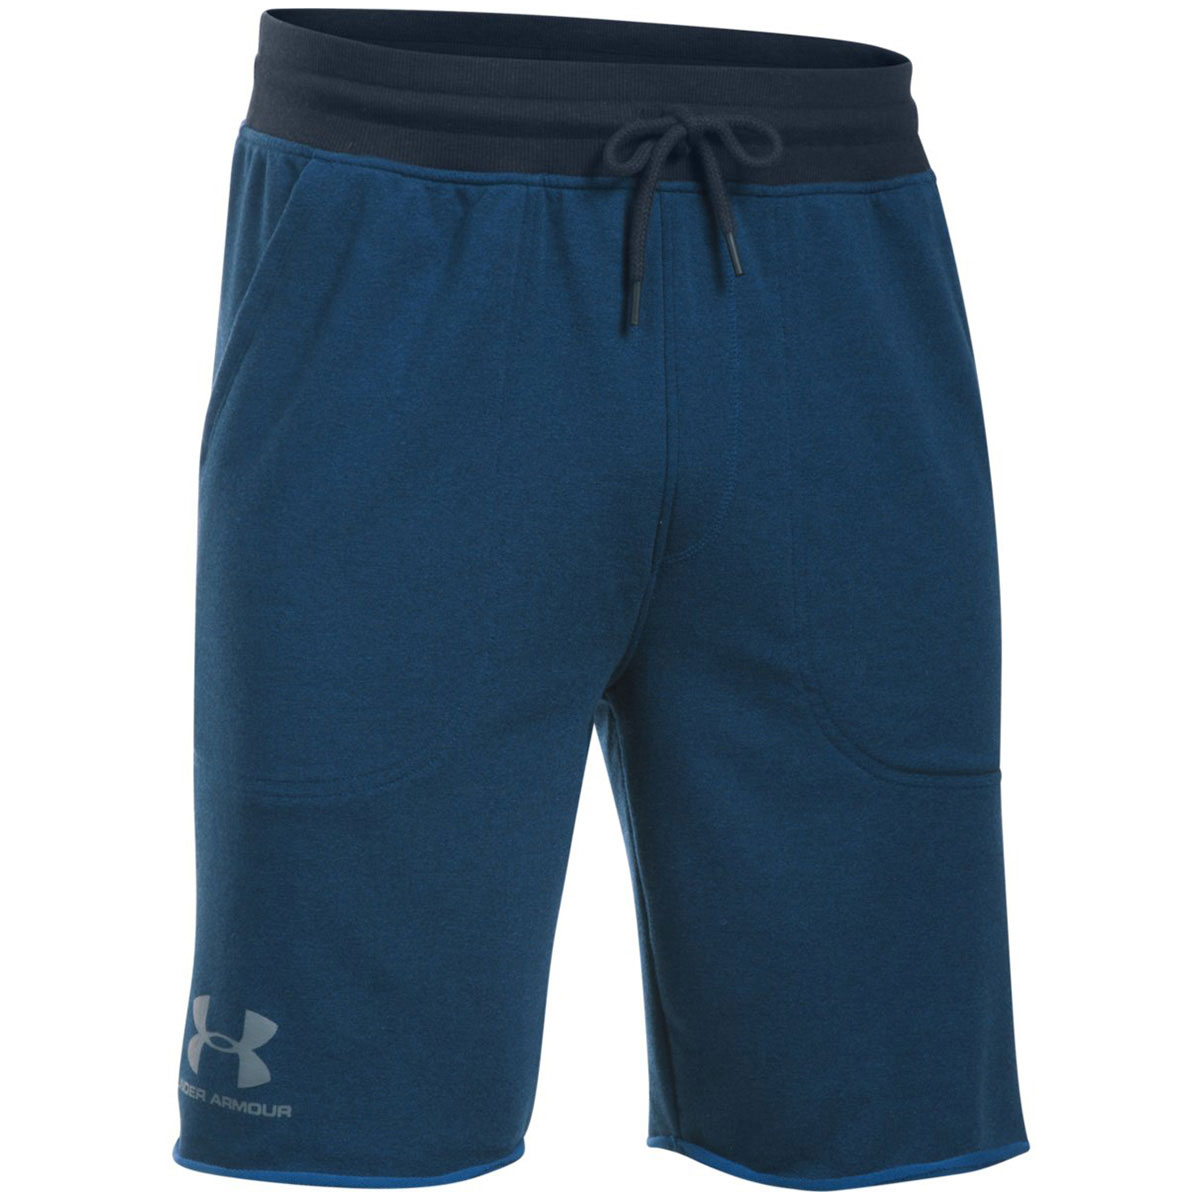 Shop for mens fleece shorts online at Target. Free shipping on purchases over $35 and save 5% every day with your Target REDcard.